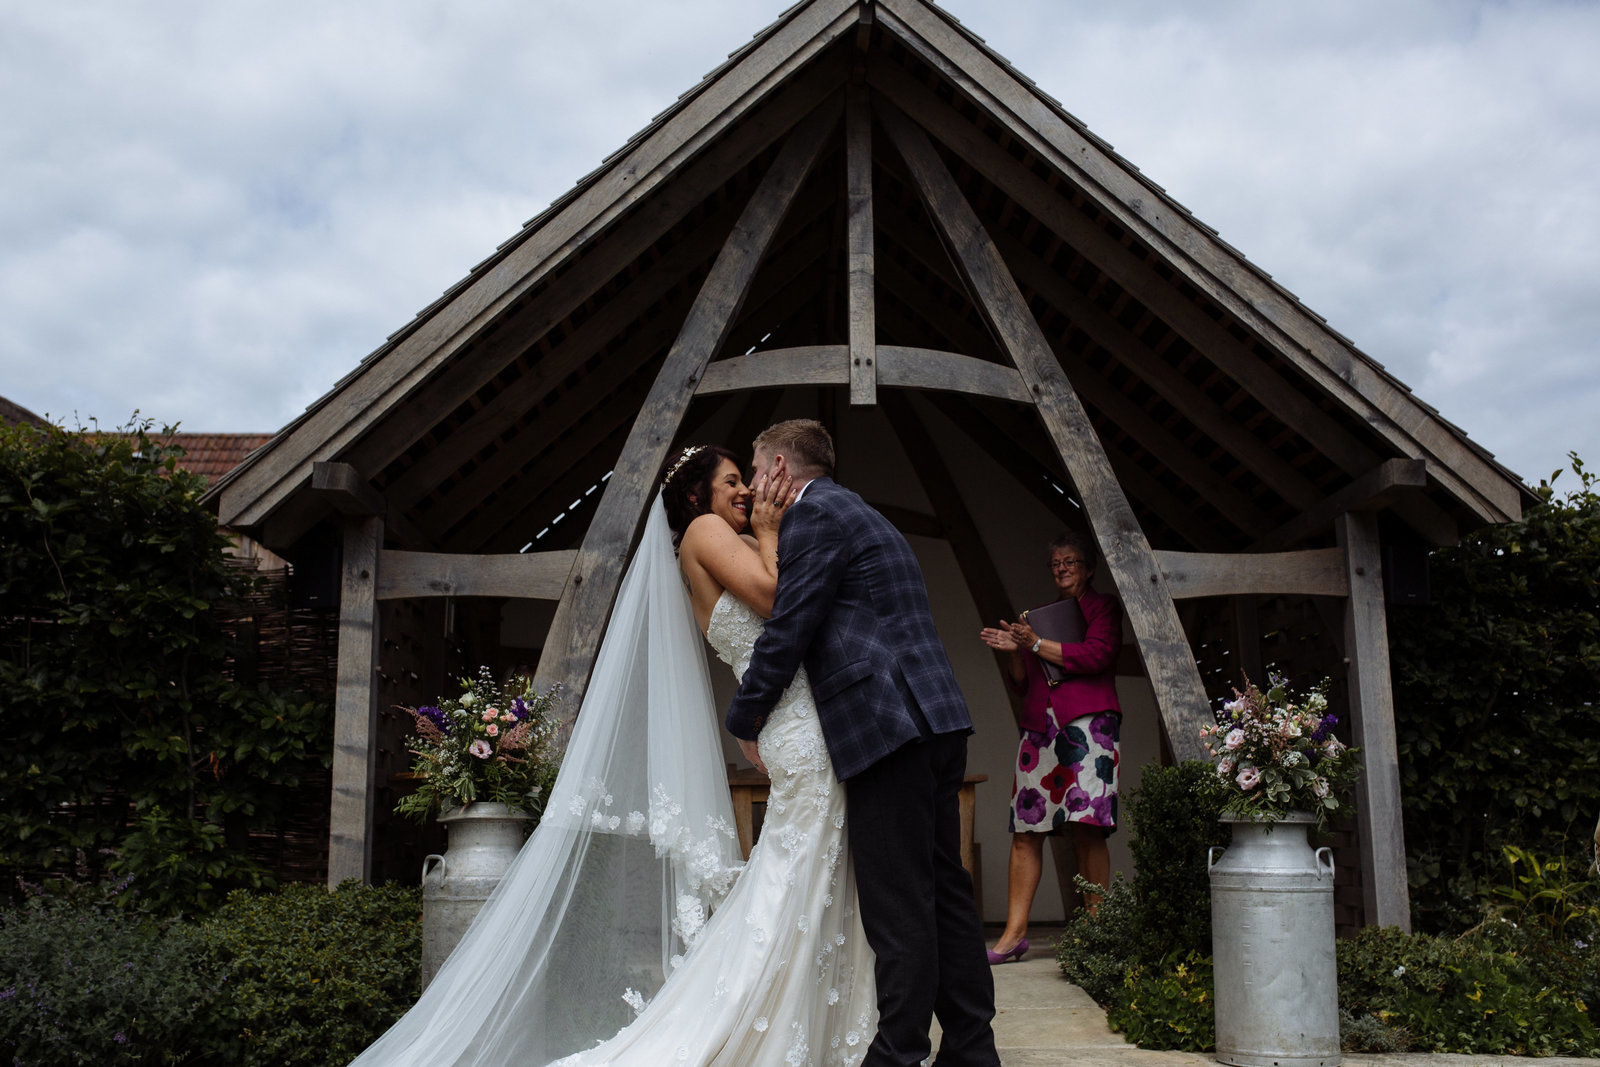 First kiss at Kingscote Barn wedding. Documentary wedding photographer